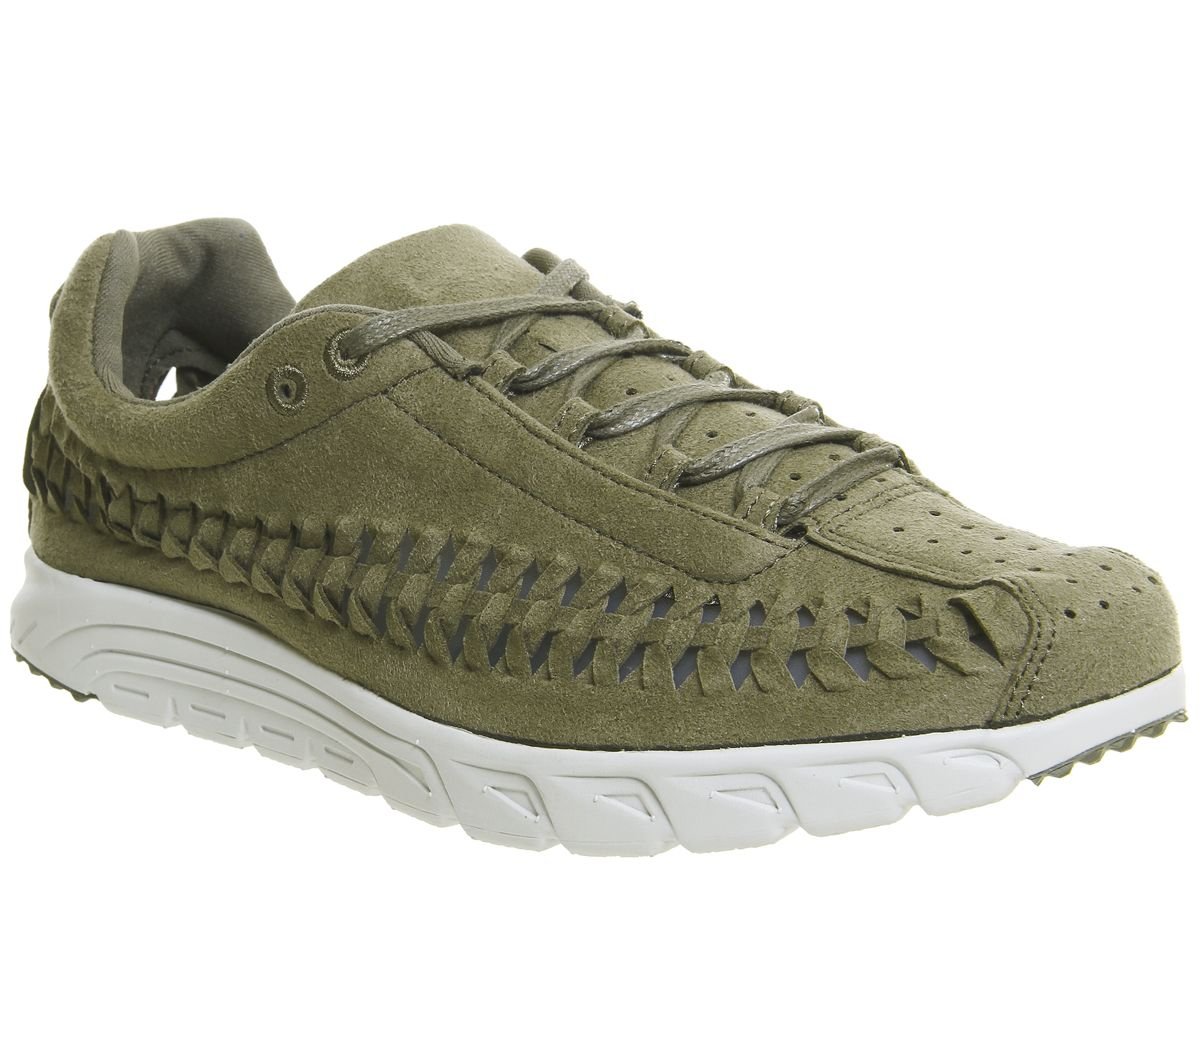 2a5e2d2457f2 Nike Mayfly Woven Trainers Medium Olive Light Bone - His trainers